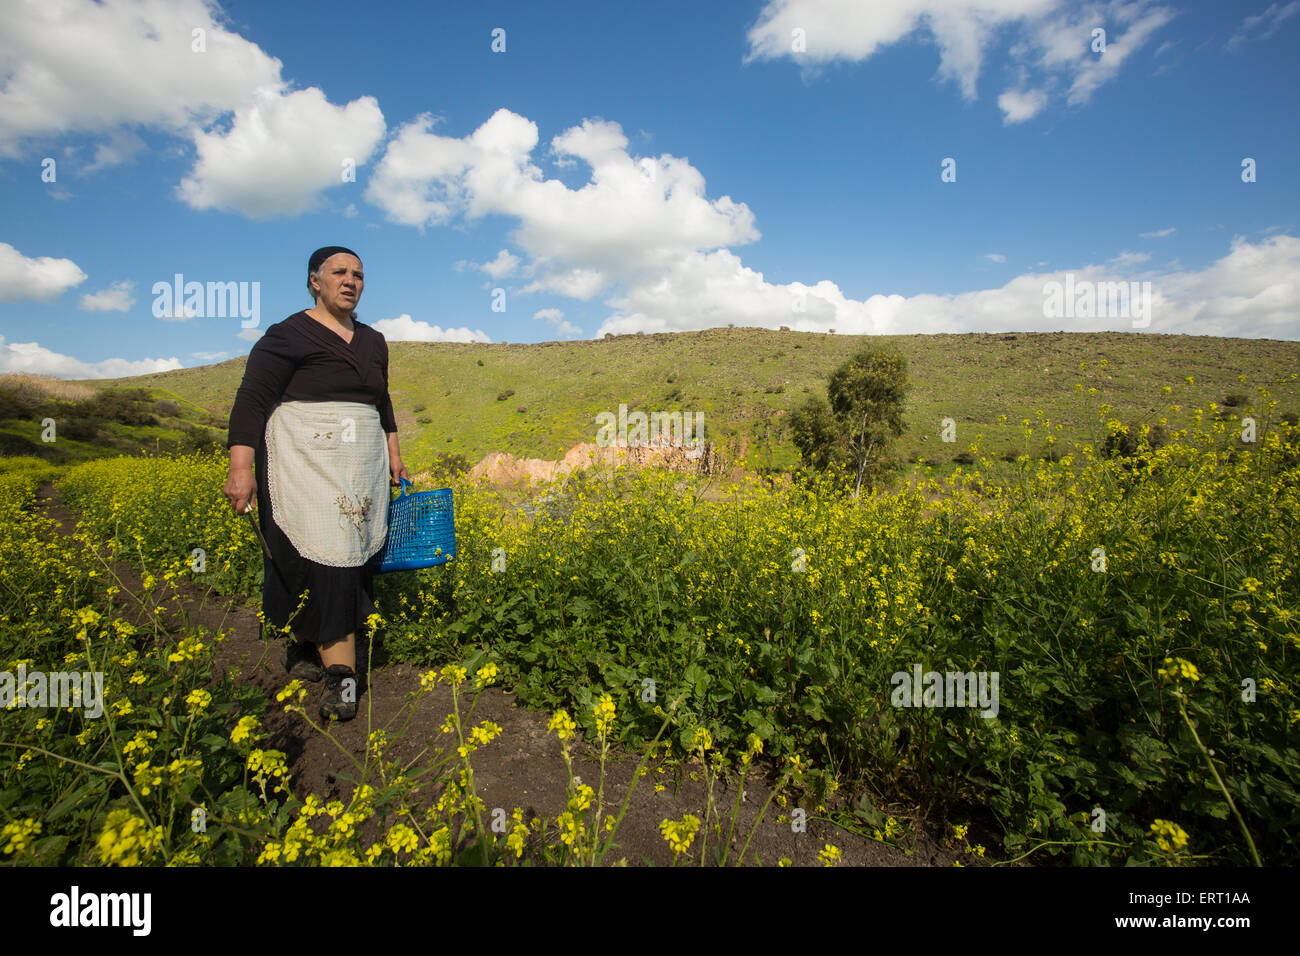 Local, Arab peasants collect herbs in the field - Stock Image